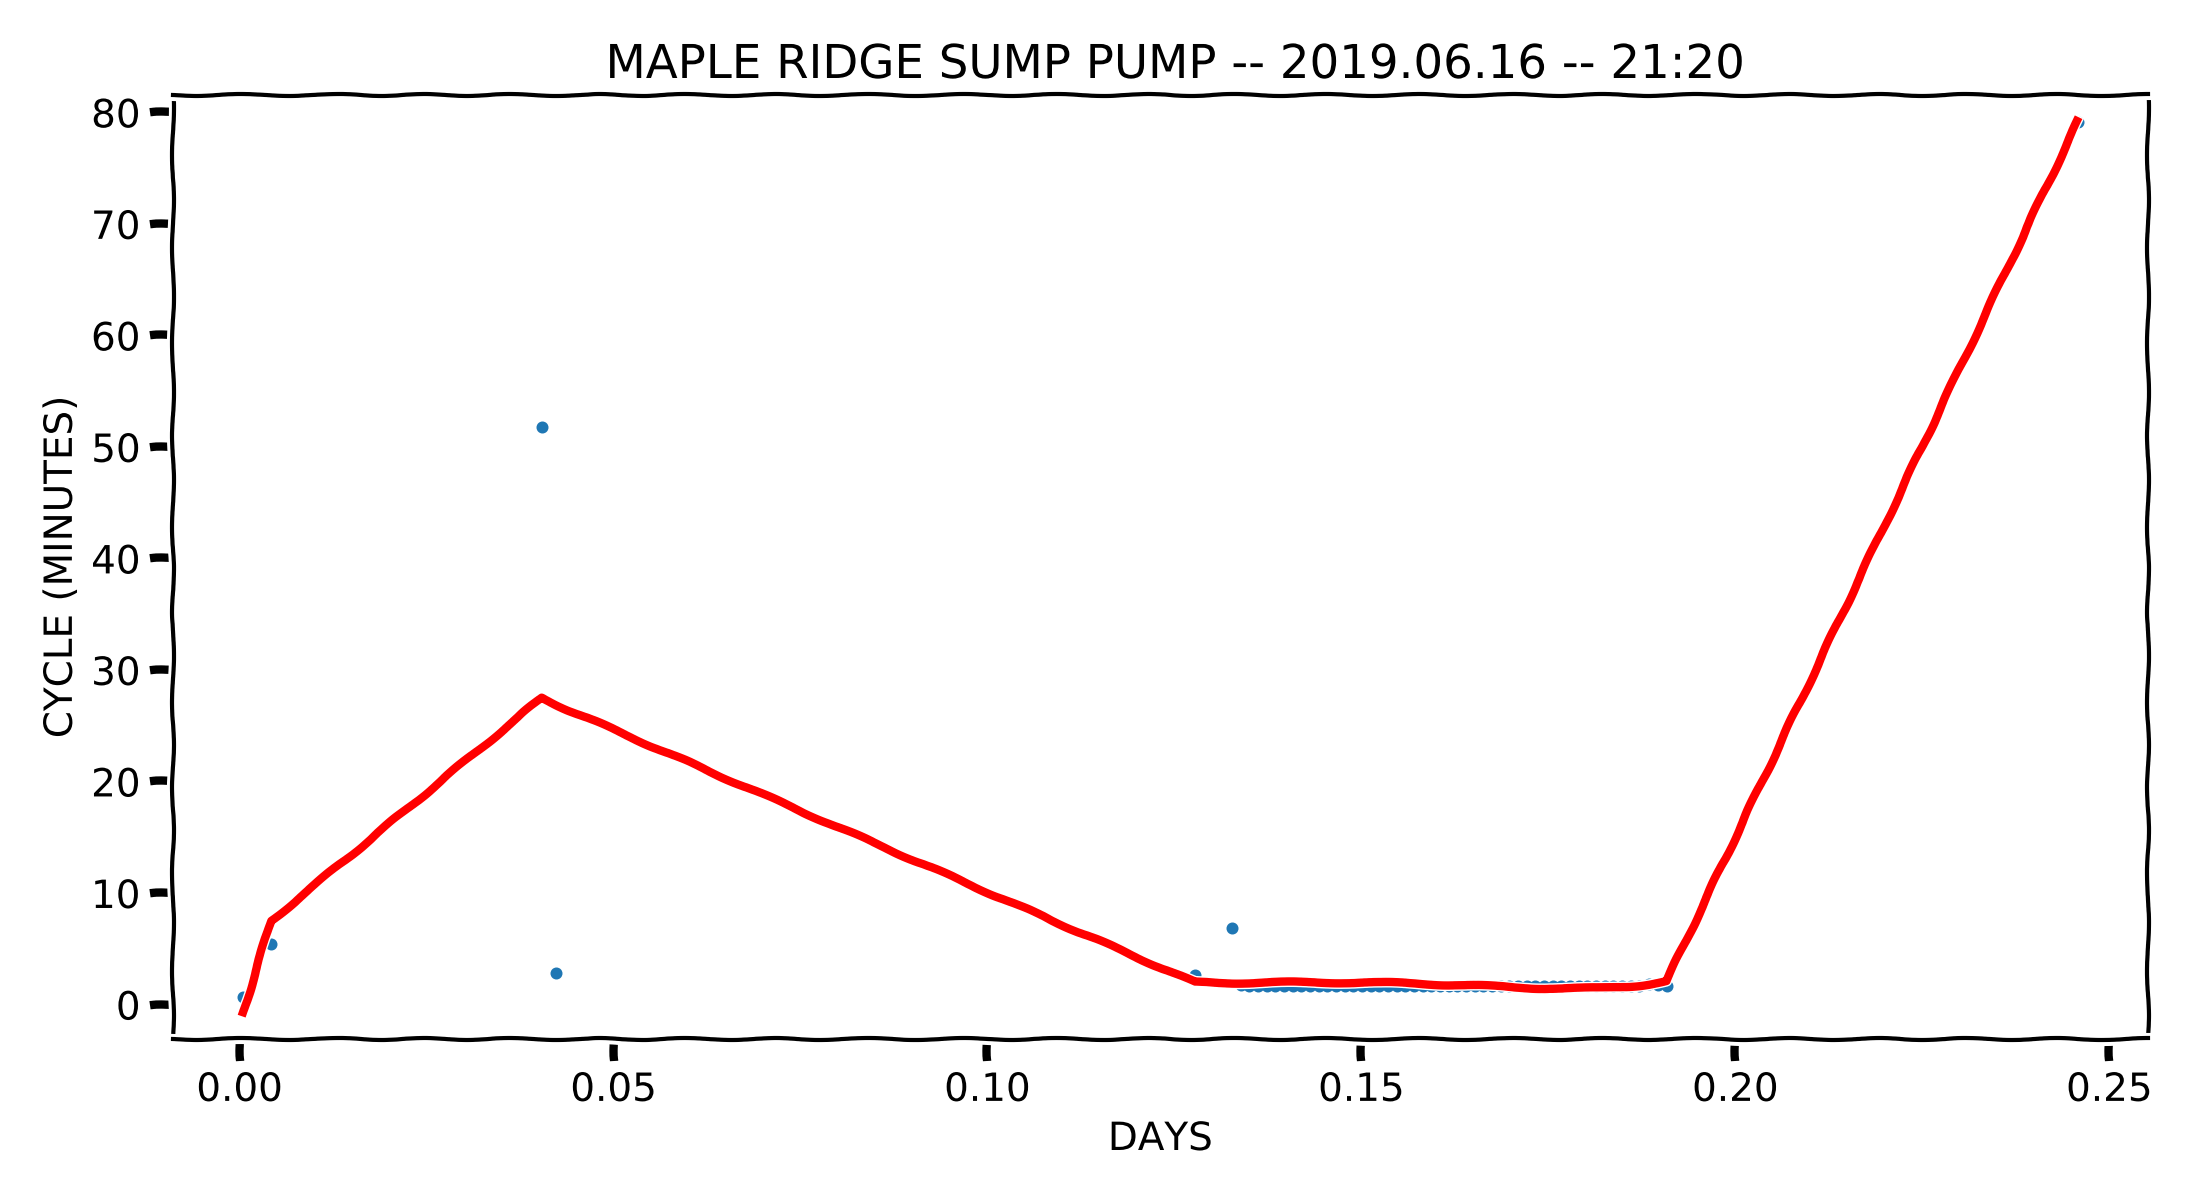 SUMP PUMP PLOT